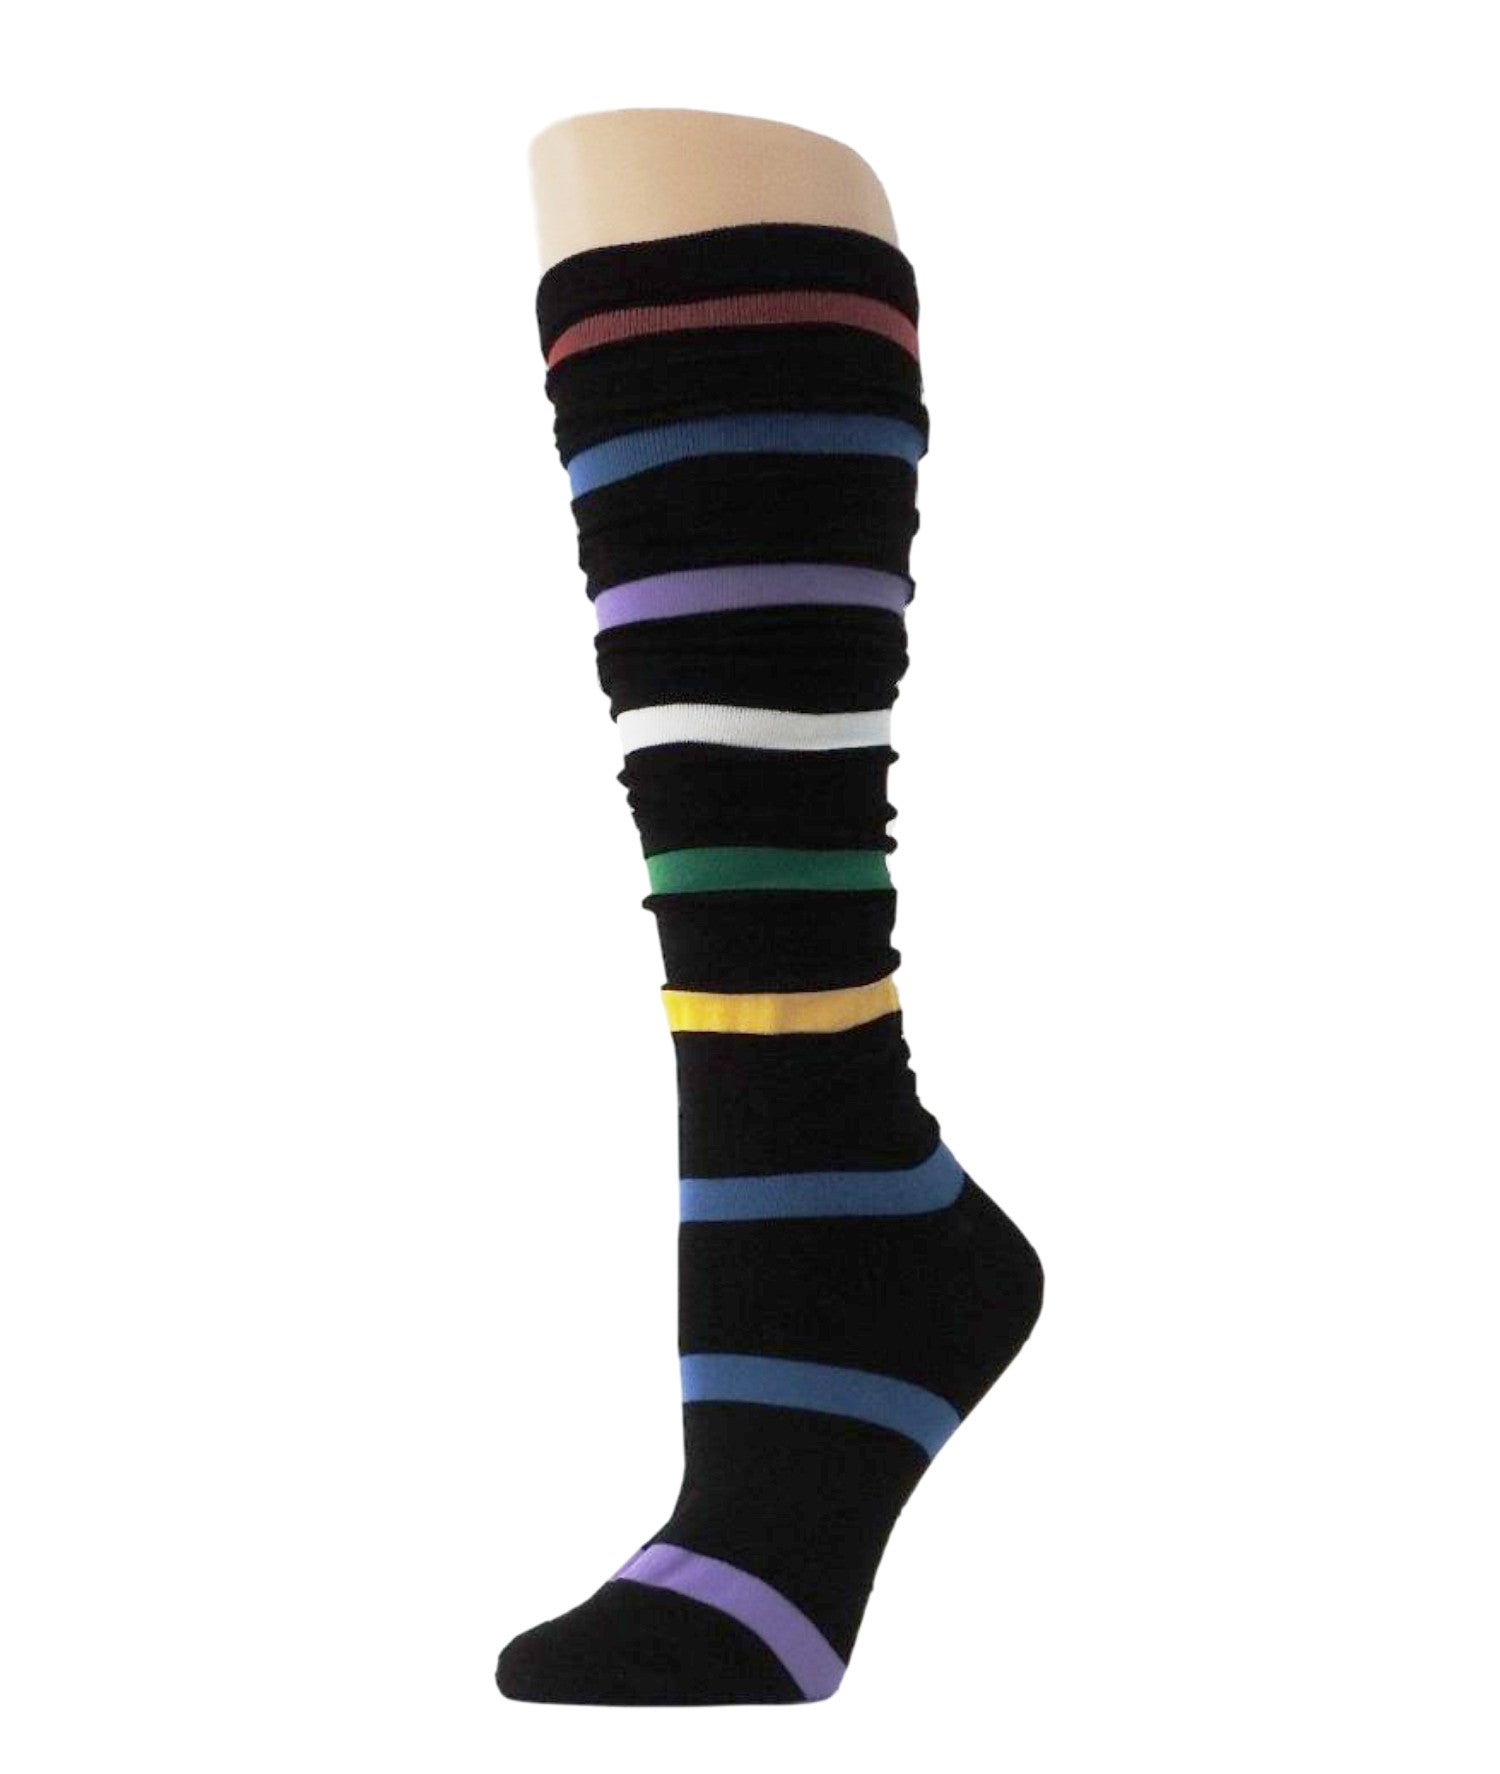 Striped Knee High Socks - Global Trendz Fashion®